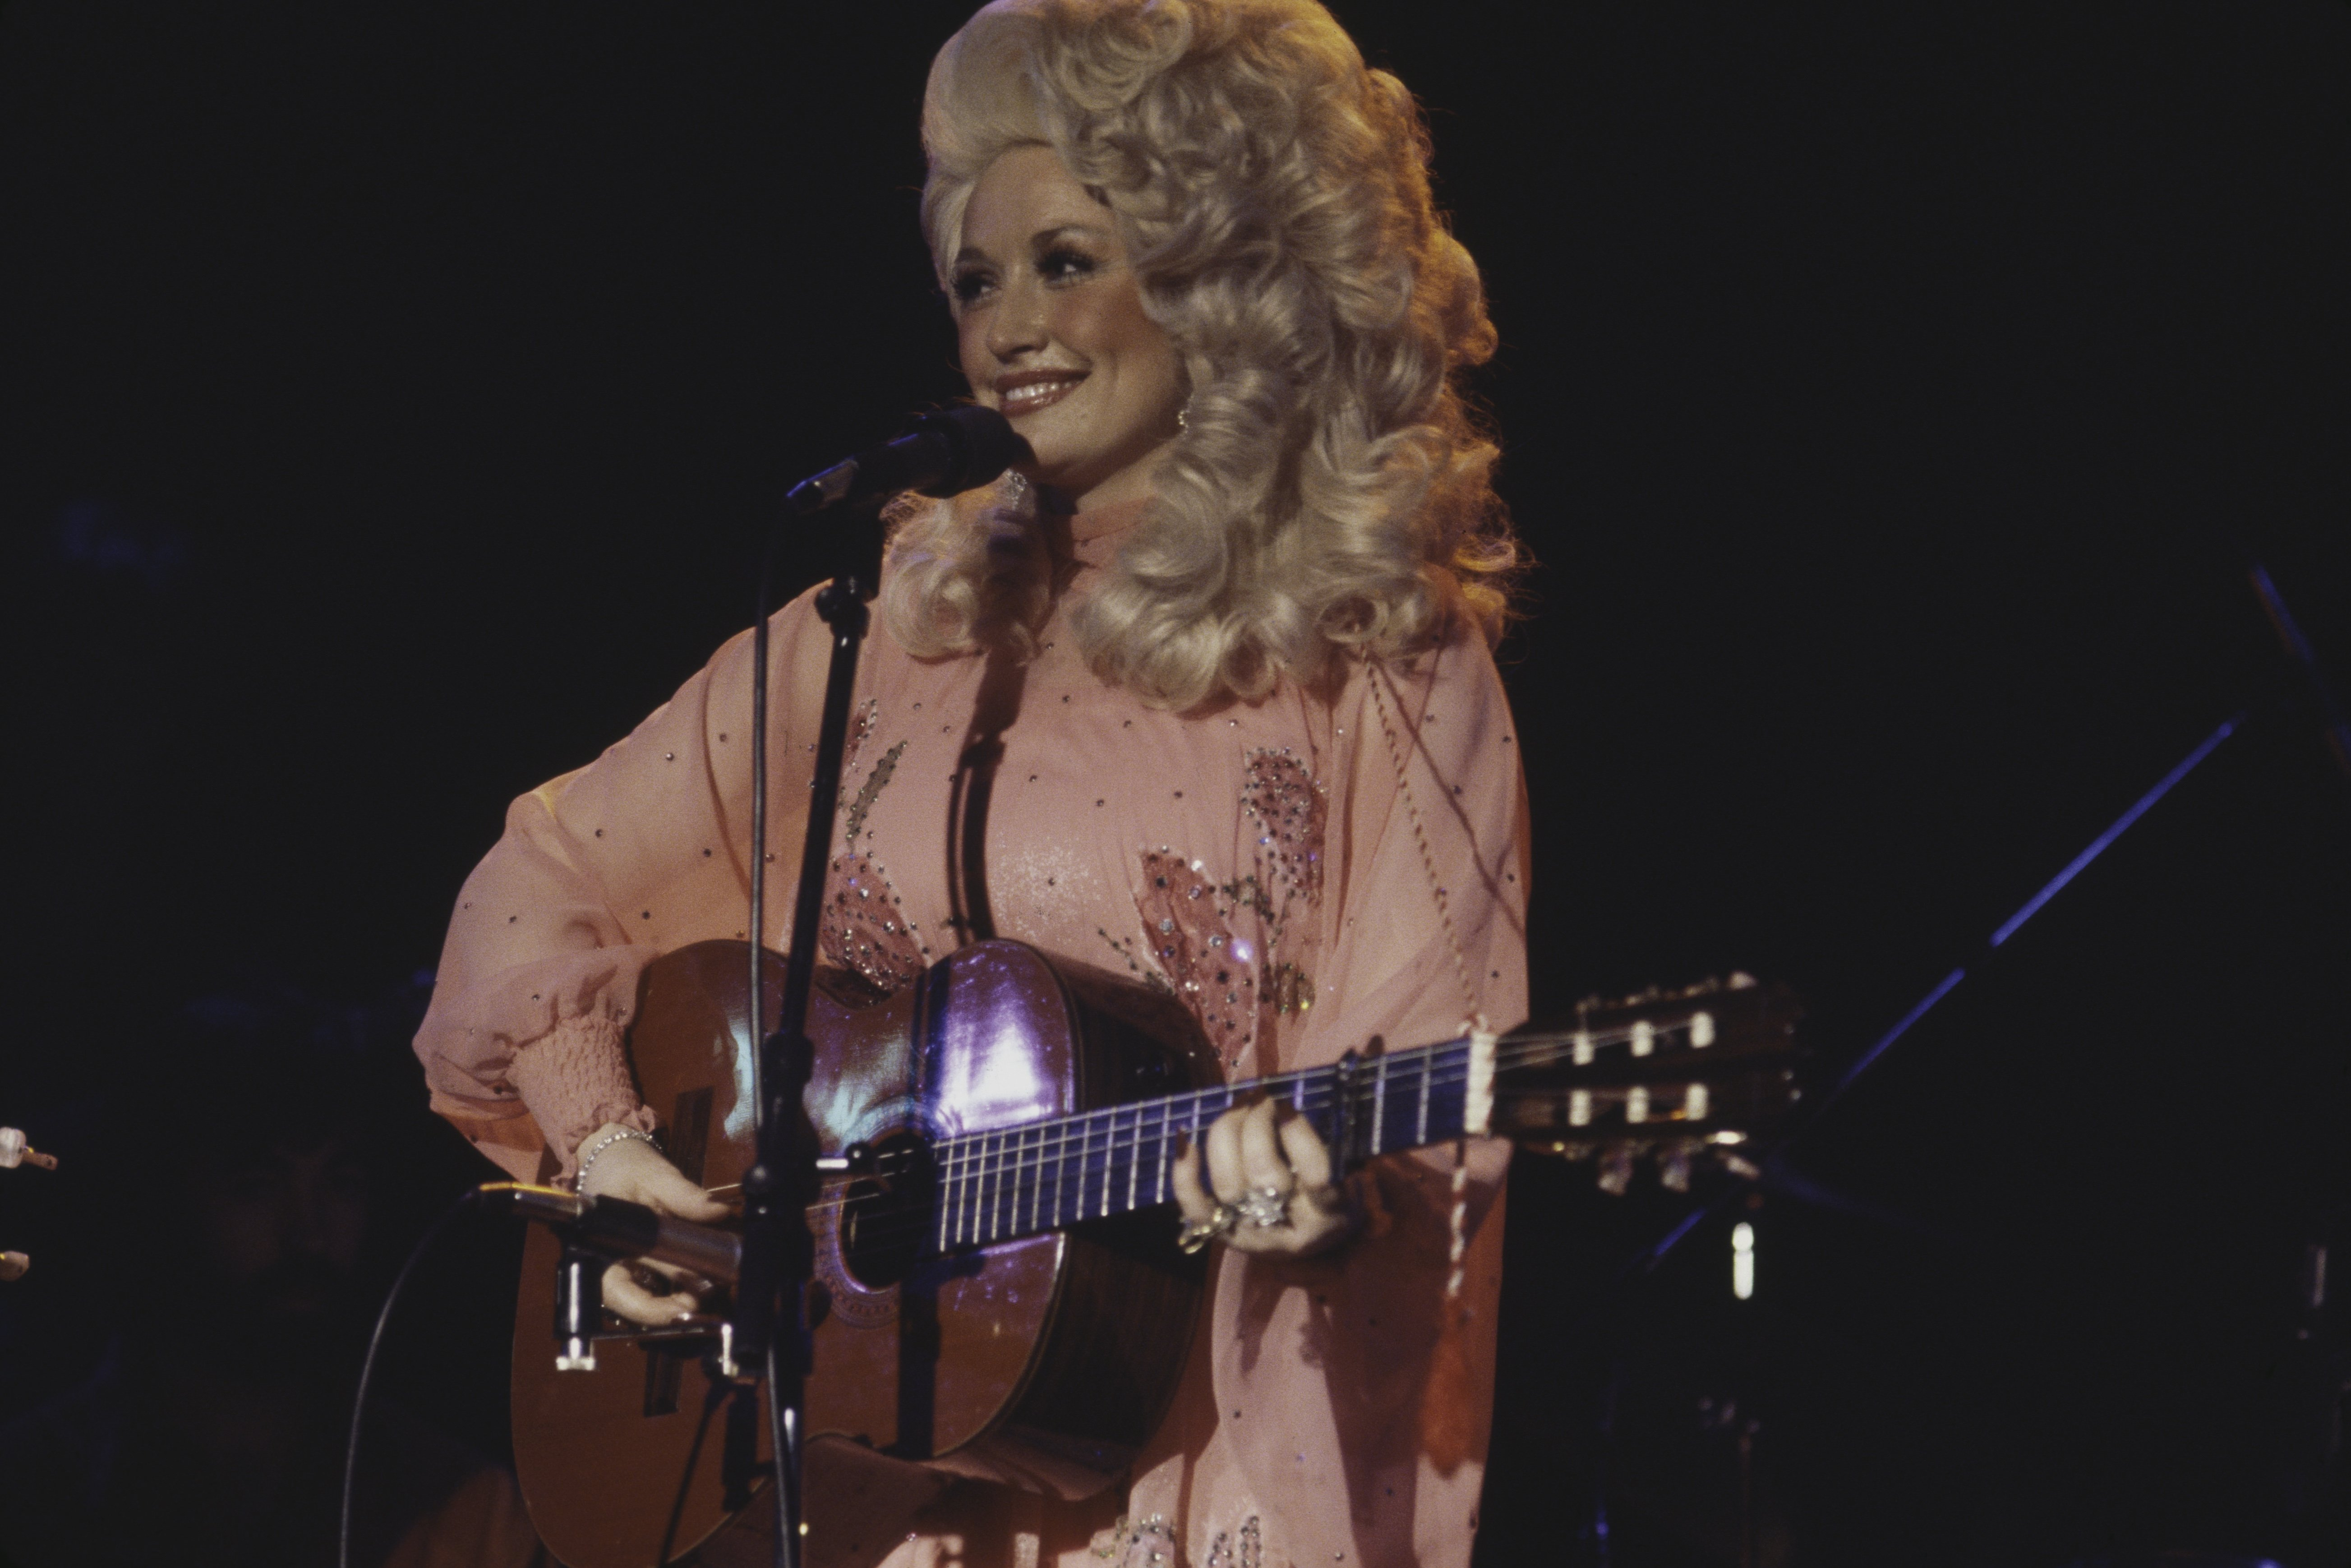 Dolly Parton performs live on stage at the Bottom Line club in New York on 11th May 1977. | Photo: GettyImages